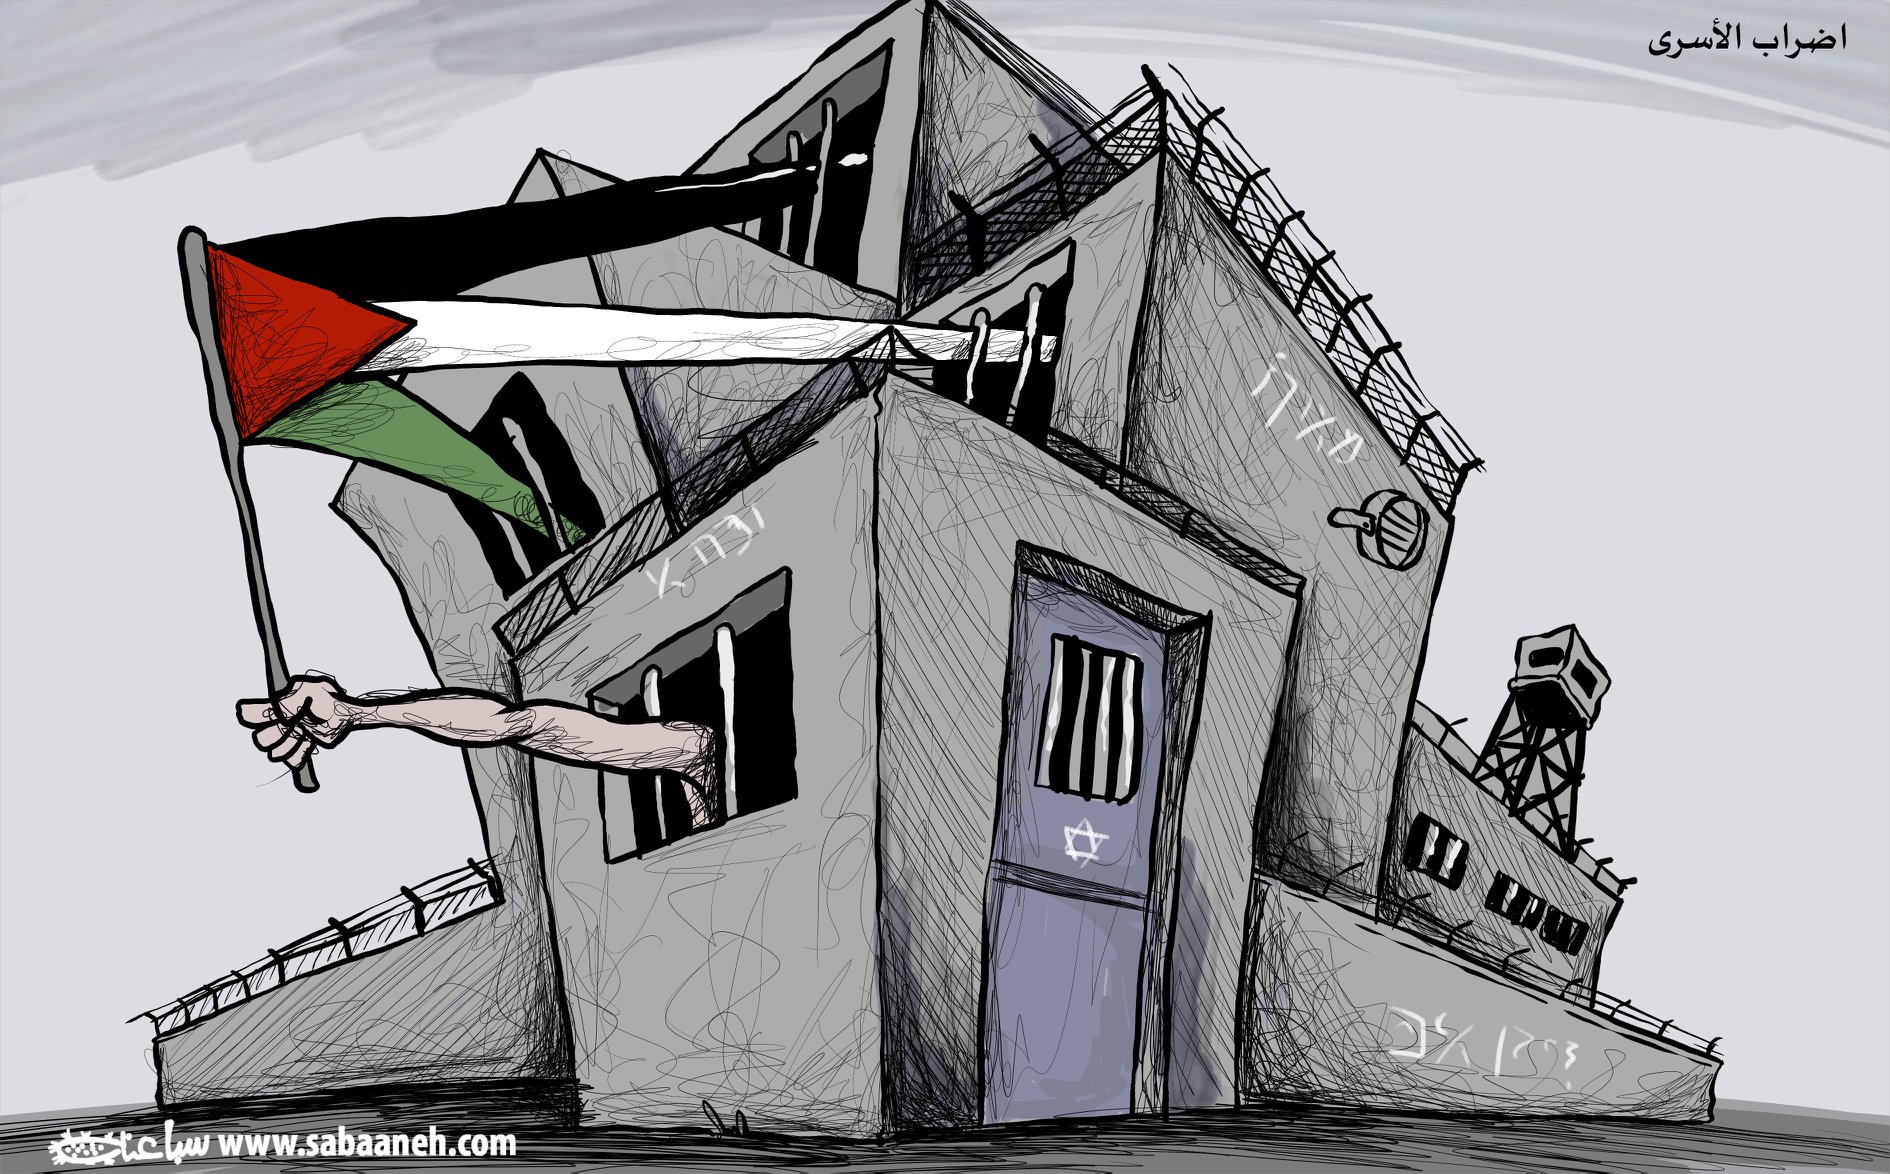 17 april Prisoners Day - Sabaaneh cartoon 2018